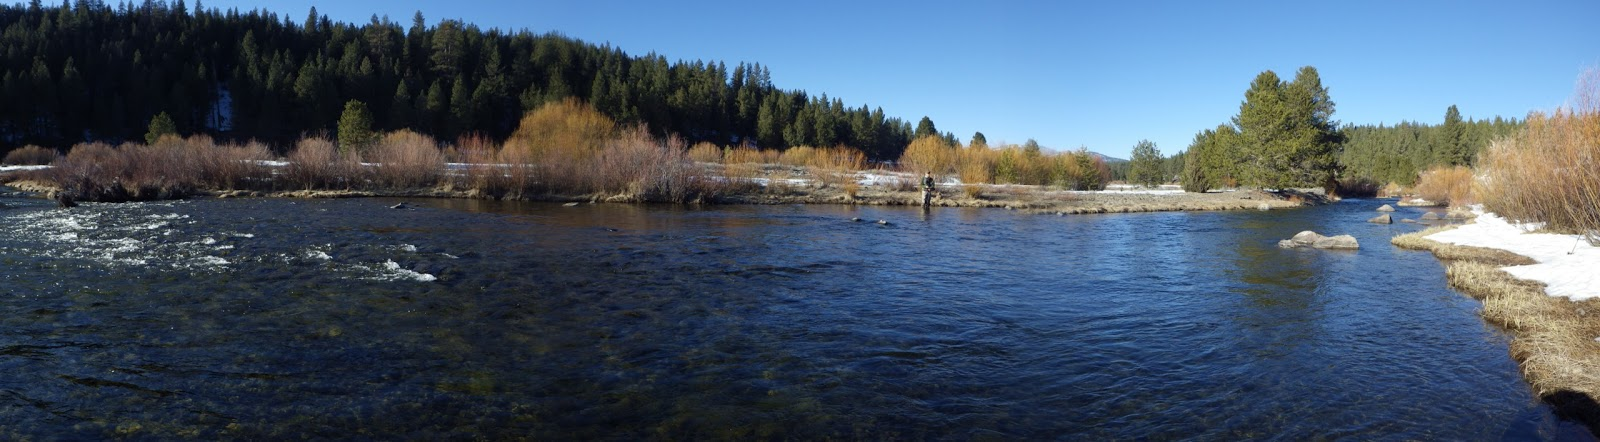 California Fly Fishing: Spring Fly Fishing Options   other